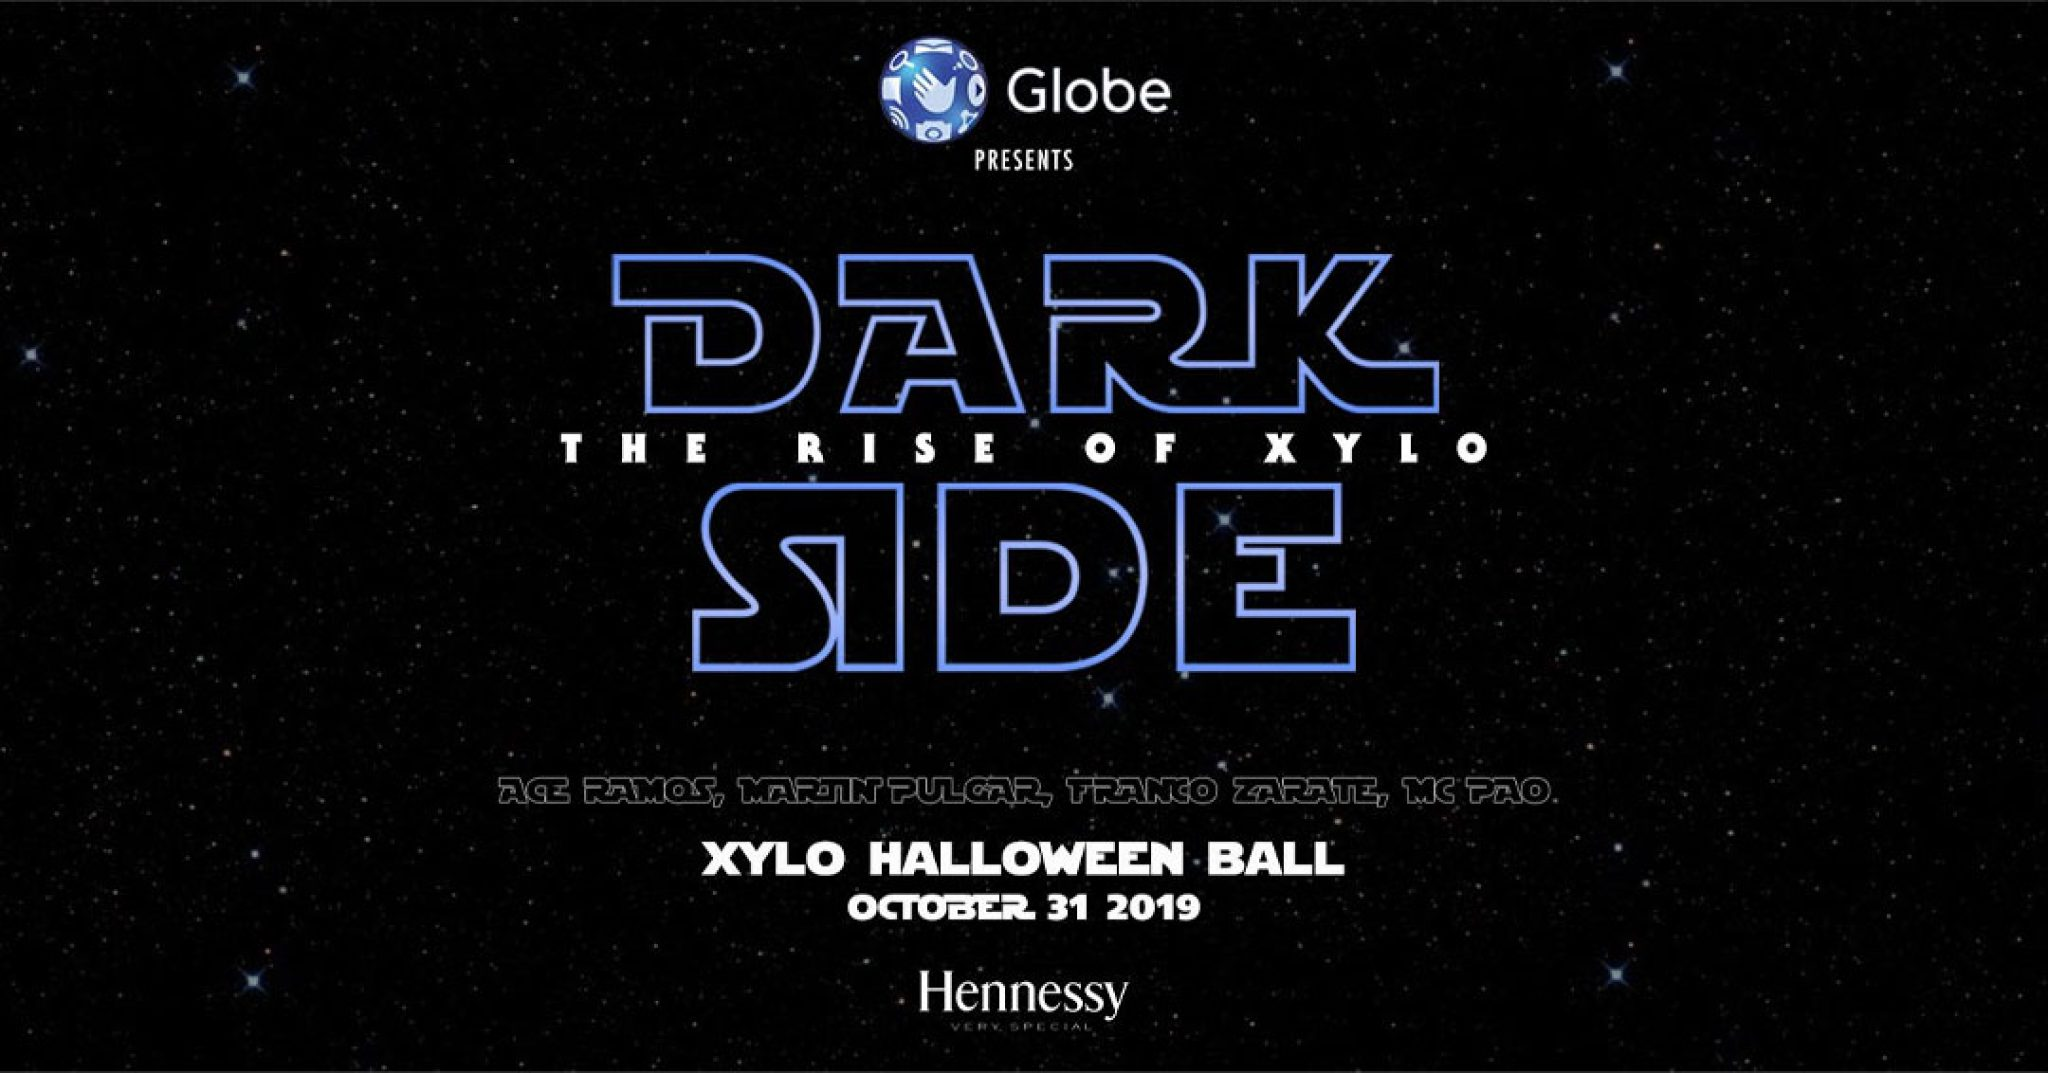 The Rise of Xylo: A Halloween Ball